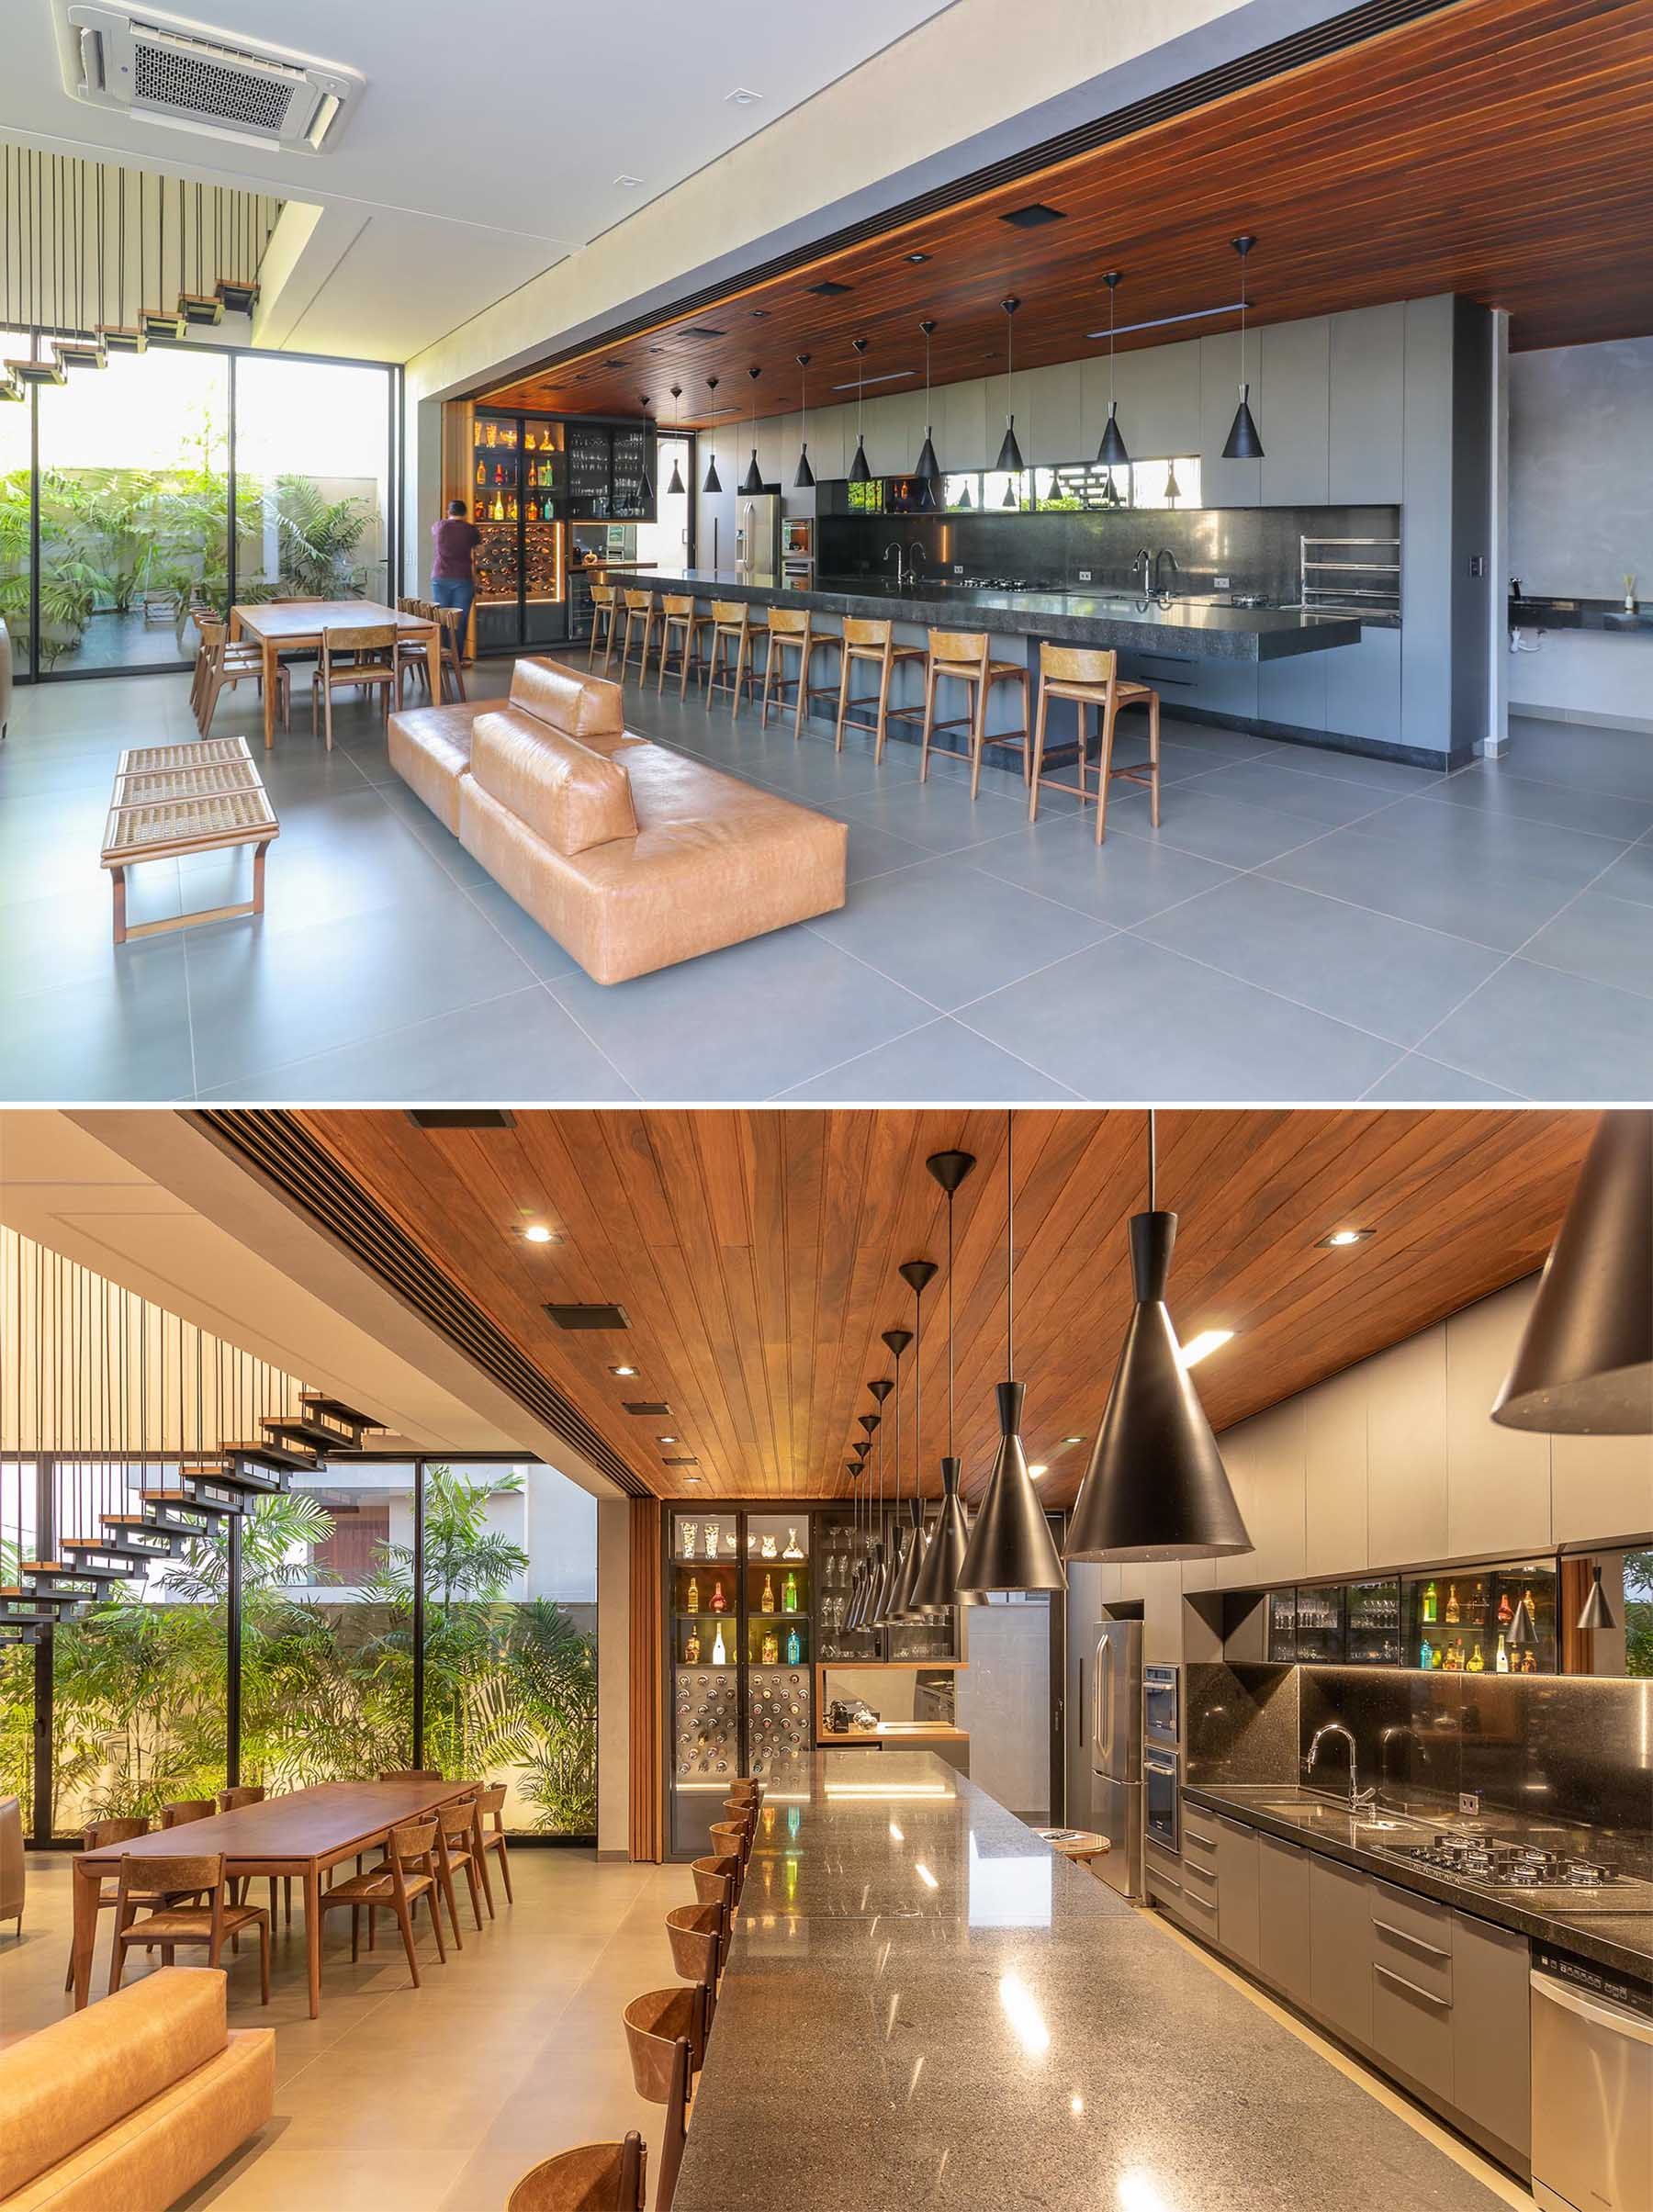 A modern home with a sliding wood wall that can hide the kitchen and expansive island from the open plan dining area and living room.